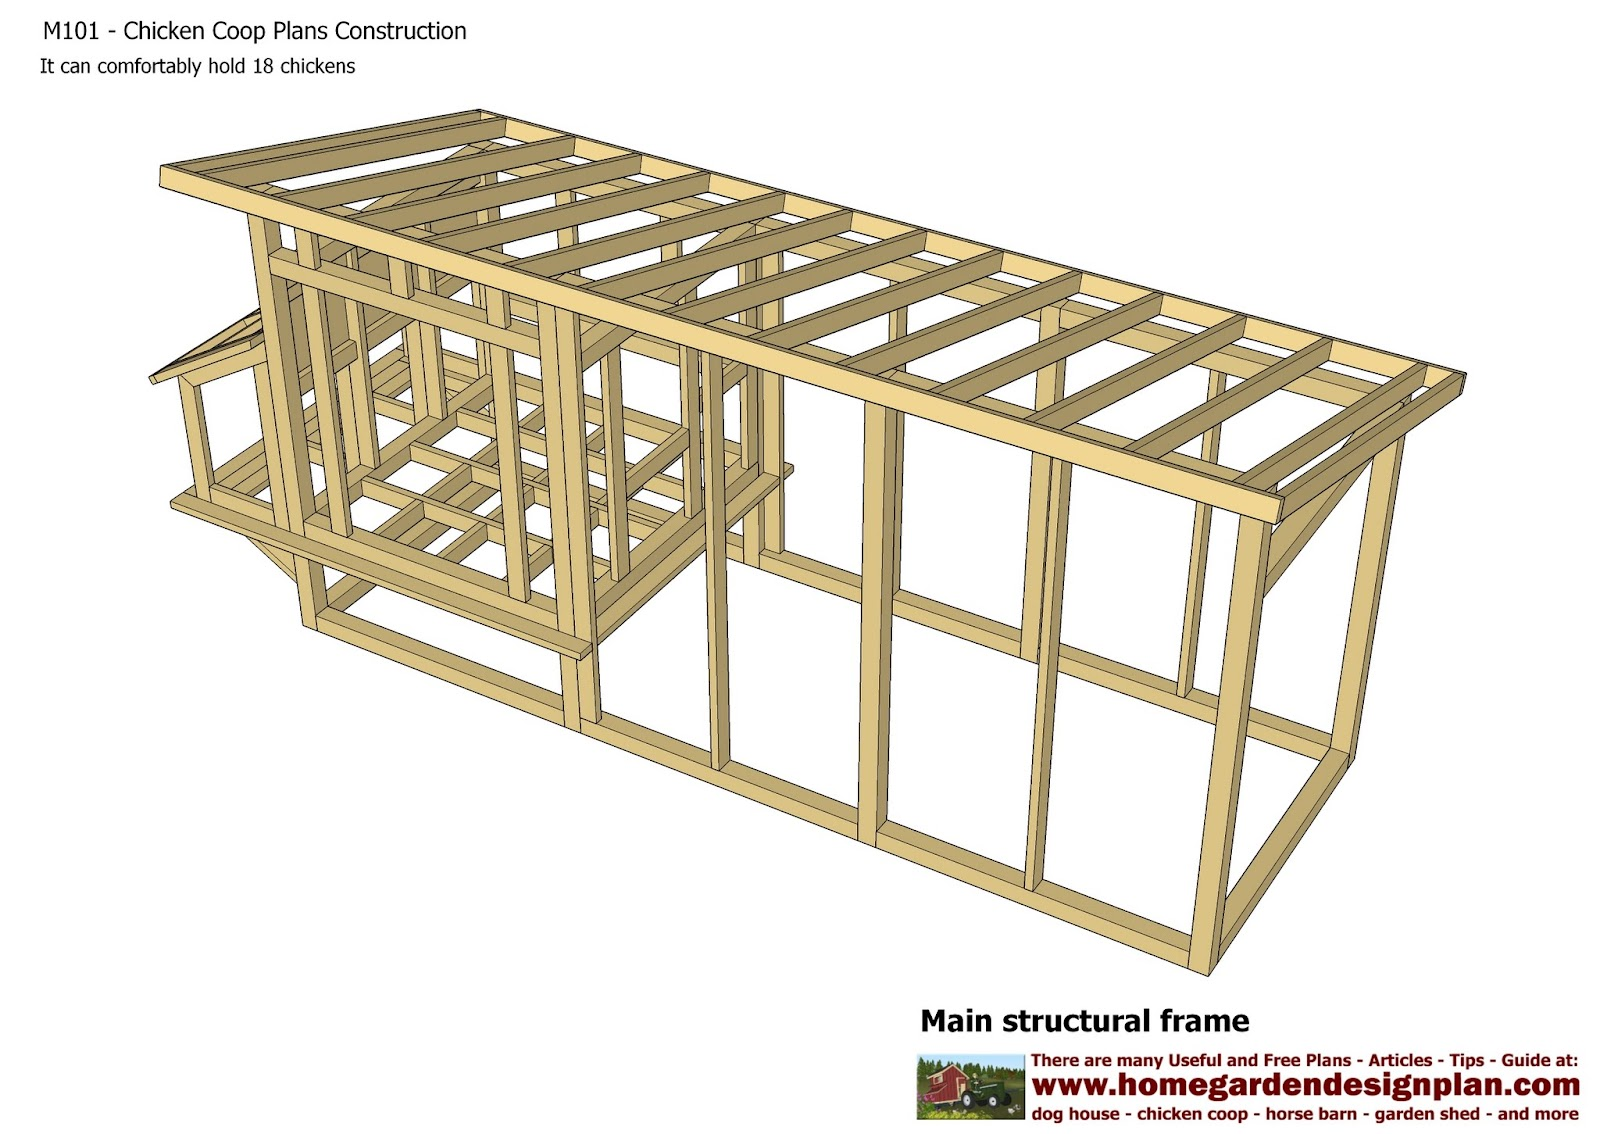 Gellencoop plans for chicken coop construction for Chicken coop plans free